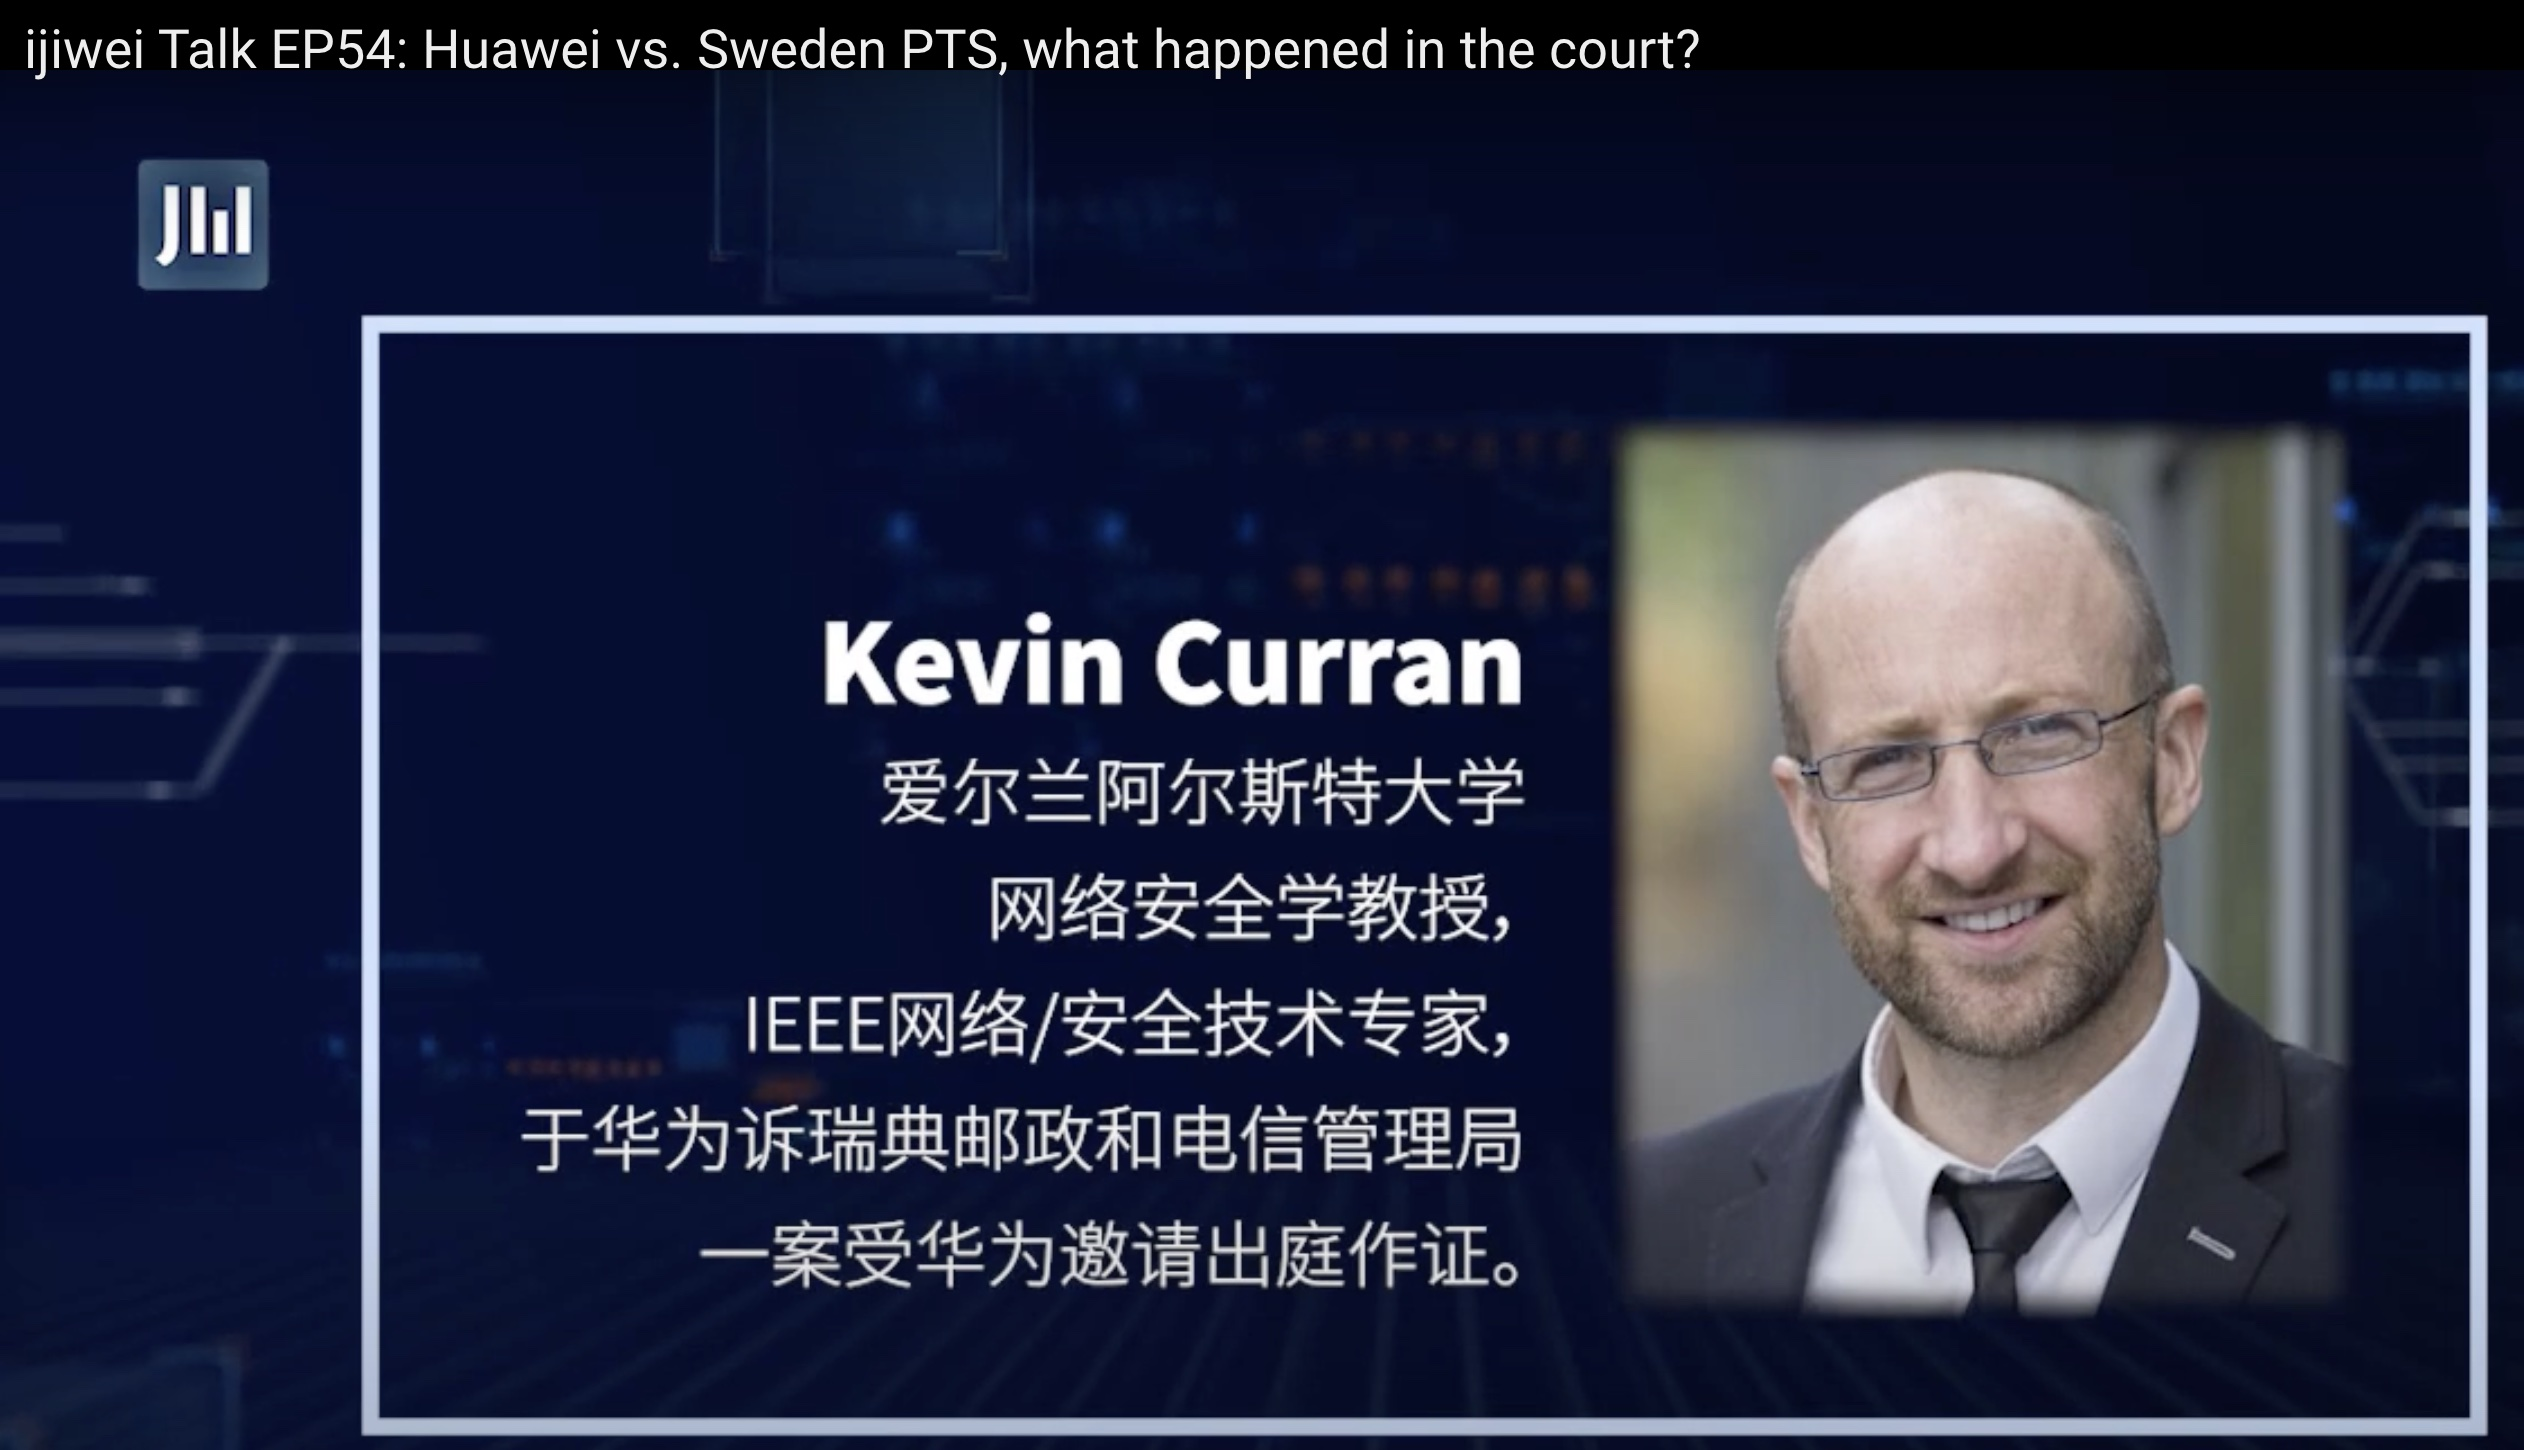 Professor Kevin Curran, Ulster University in an interview with IJIWEI Talk on Huawei's court case against the Swedish Post and Telecom Authority appealing the ban of their 5G equipment.